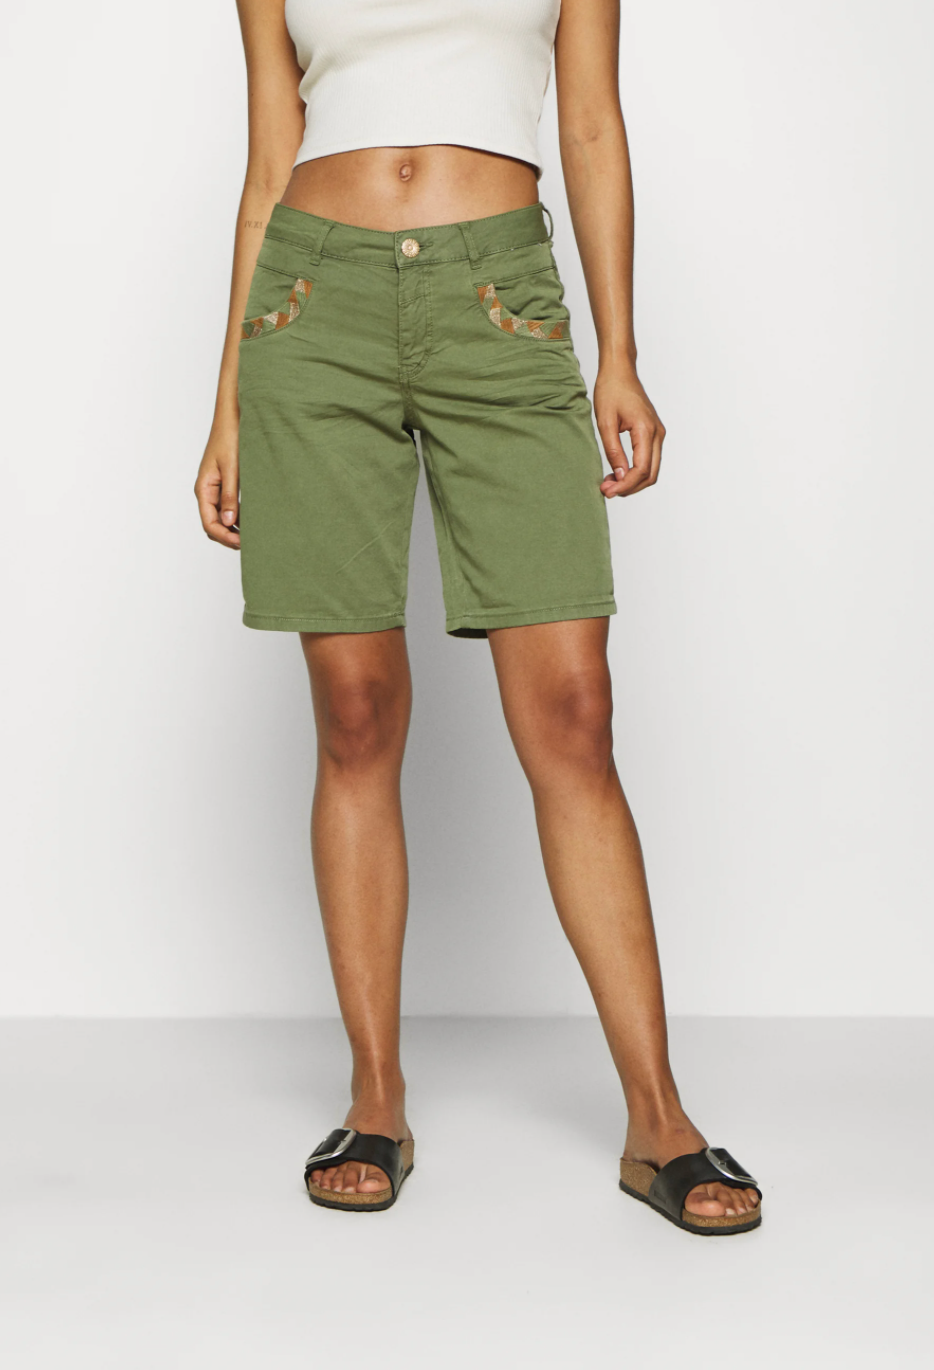 shop online Mos Mosh - Naomi Deecor G.D Shorts Green Oil hunterminx